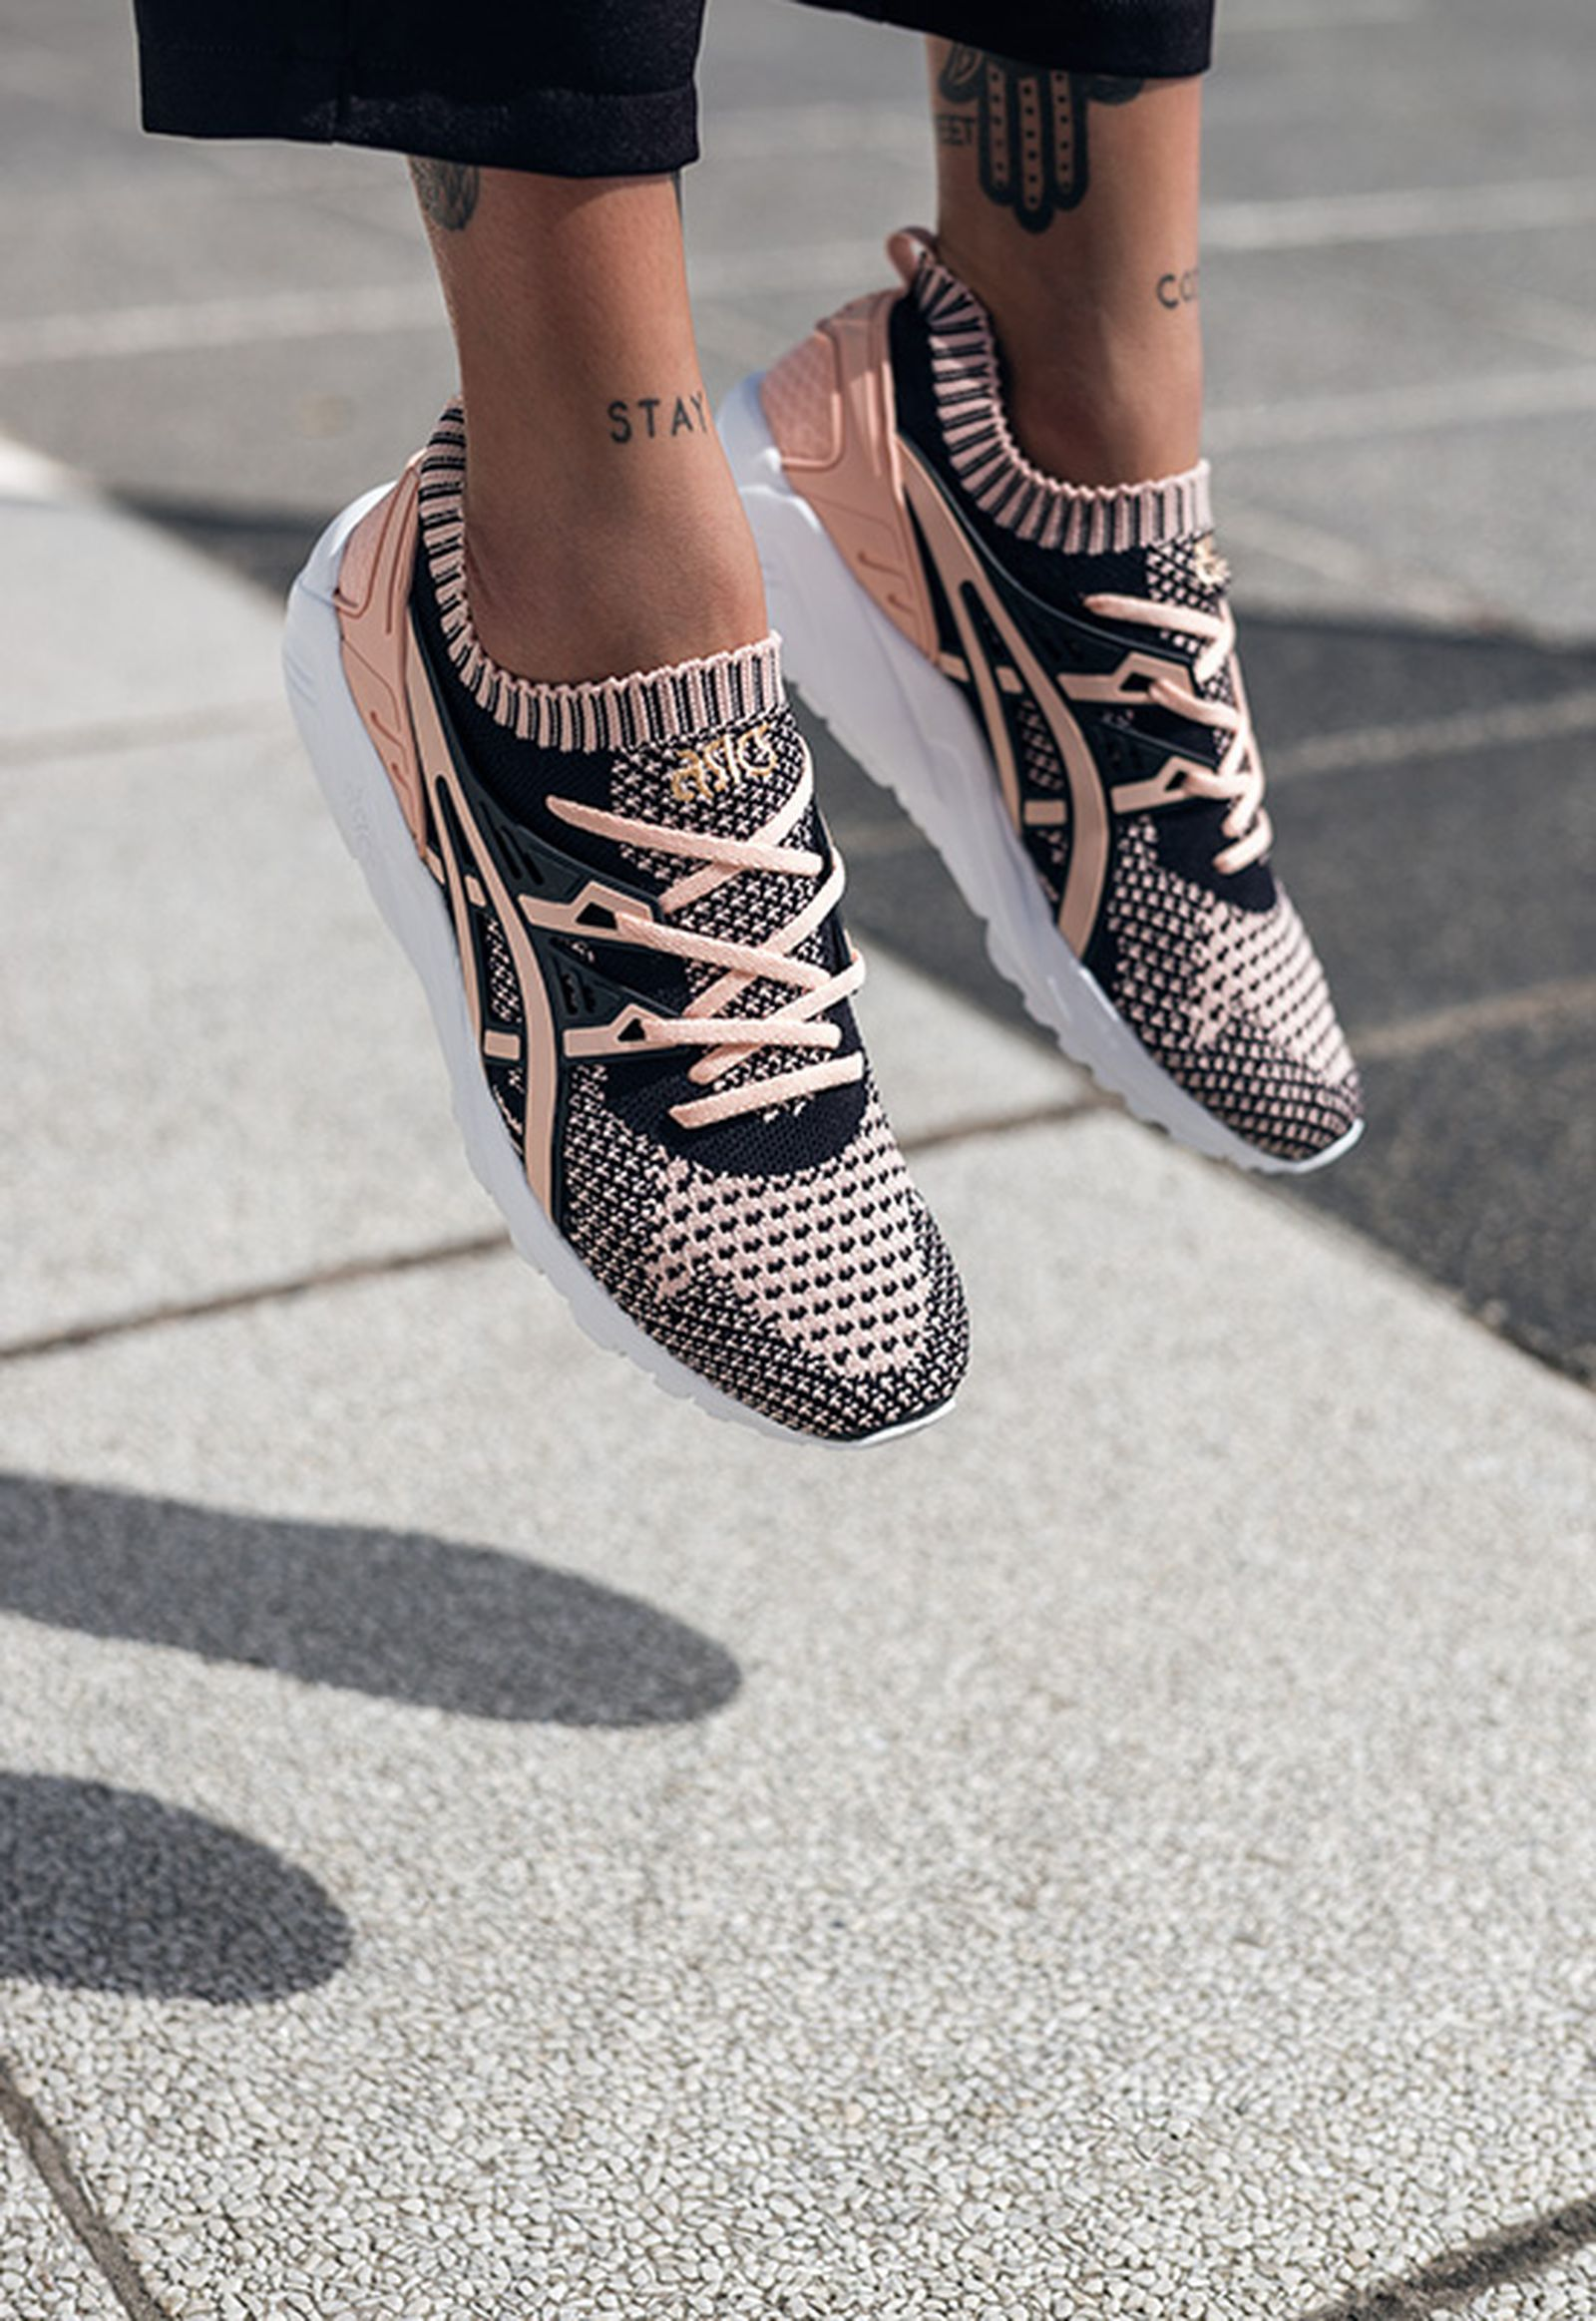 asics-tiger-gel-kayano-trainer-knit-colors-03